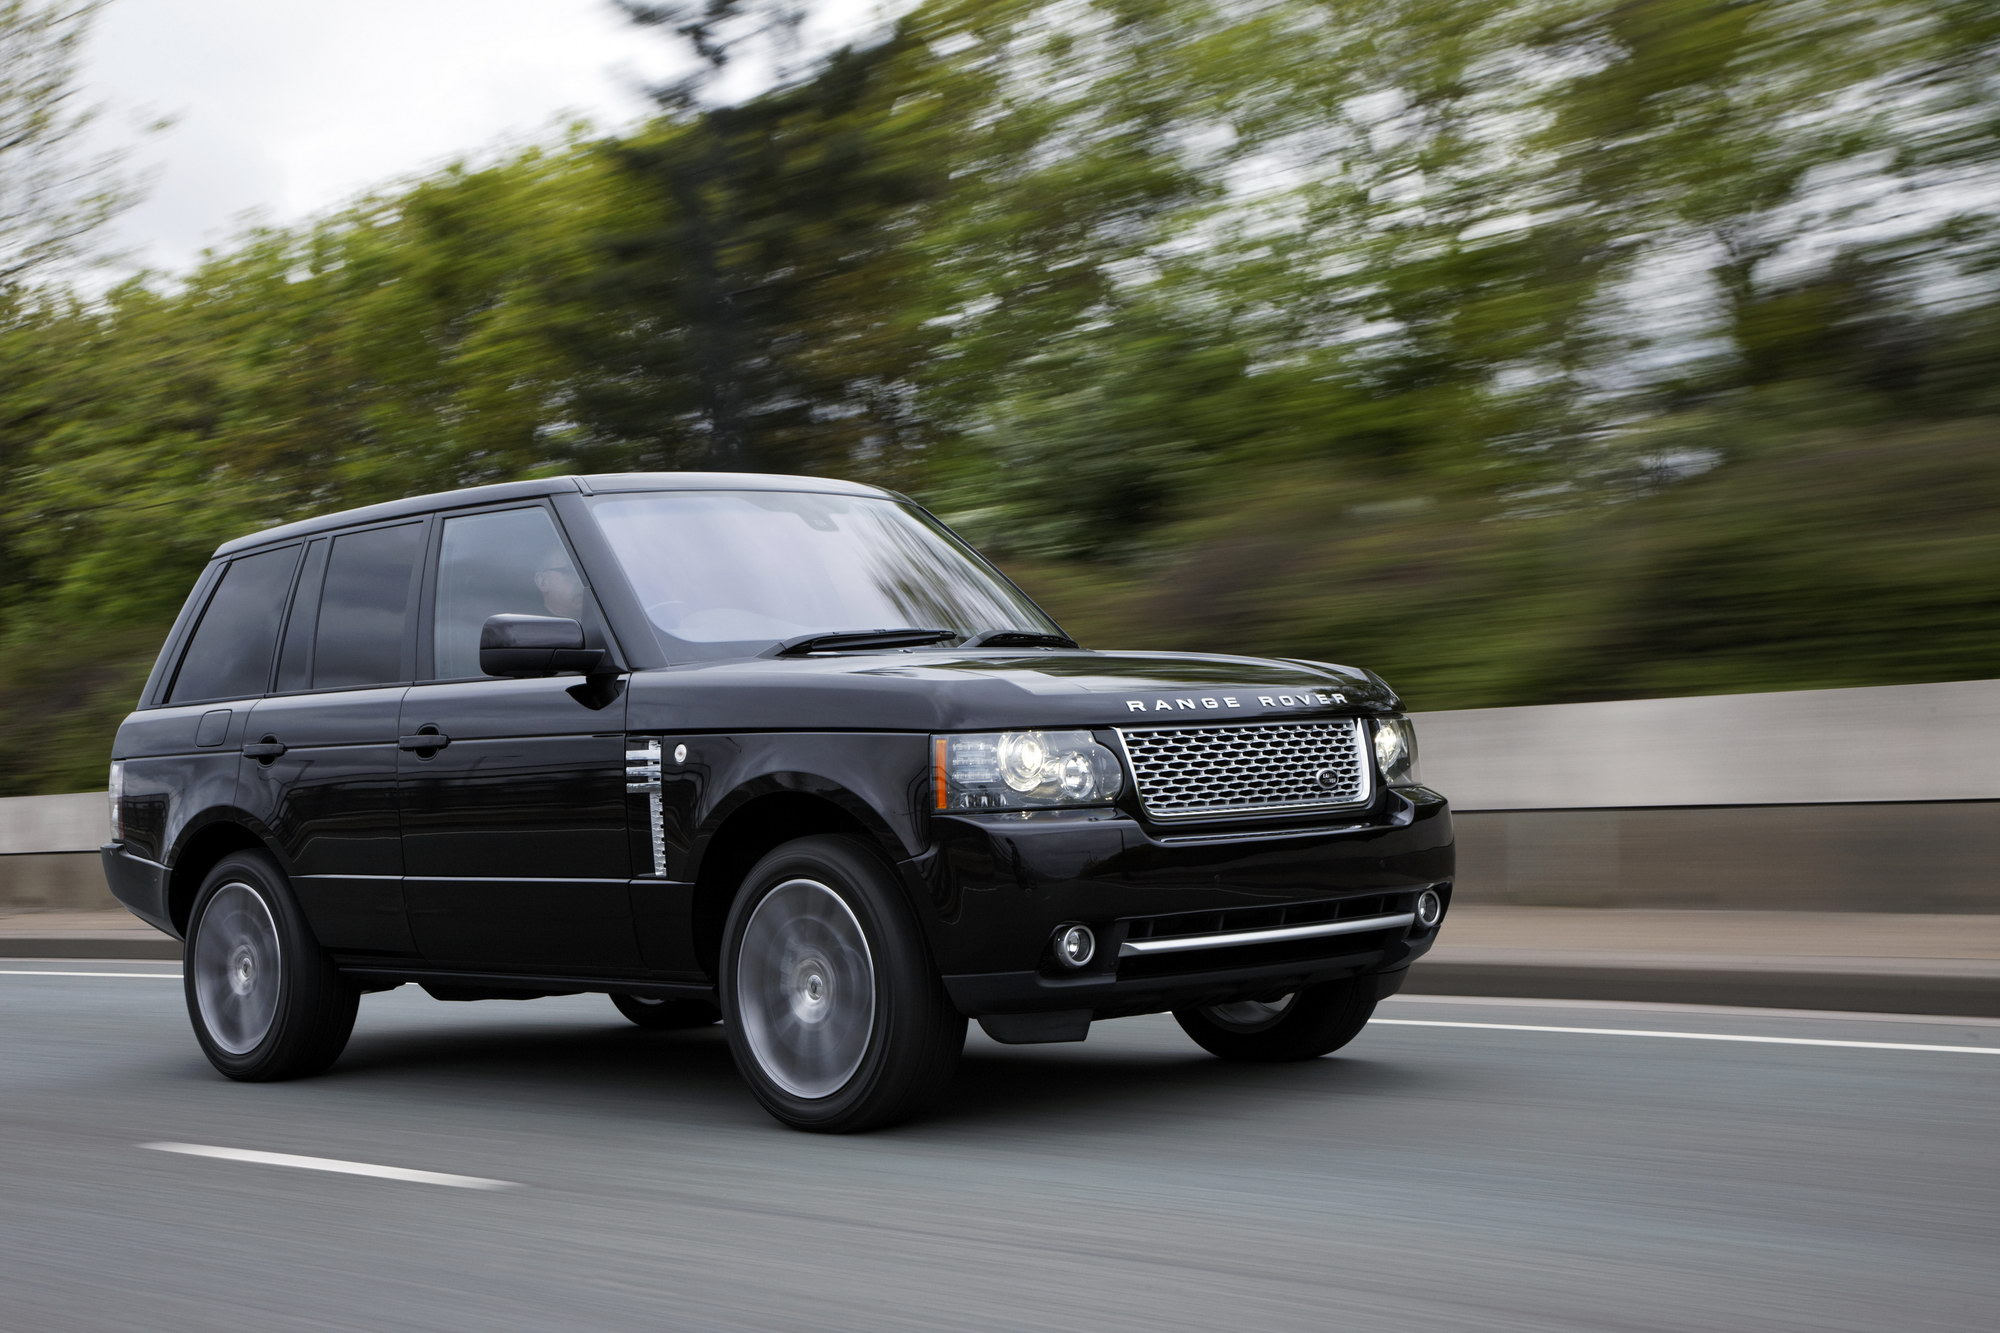 Range Rover Autobiography 2010 >> 2010 Range Rover Autobiography Black Limited Edition Top Speed